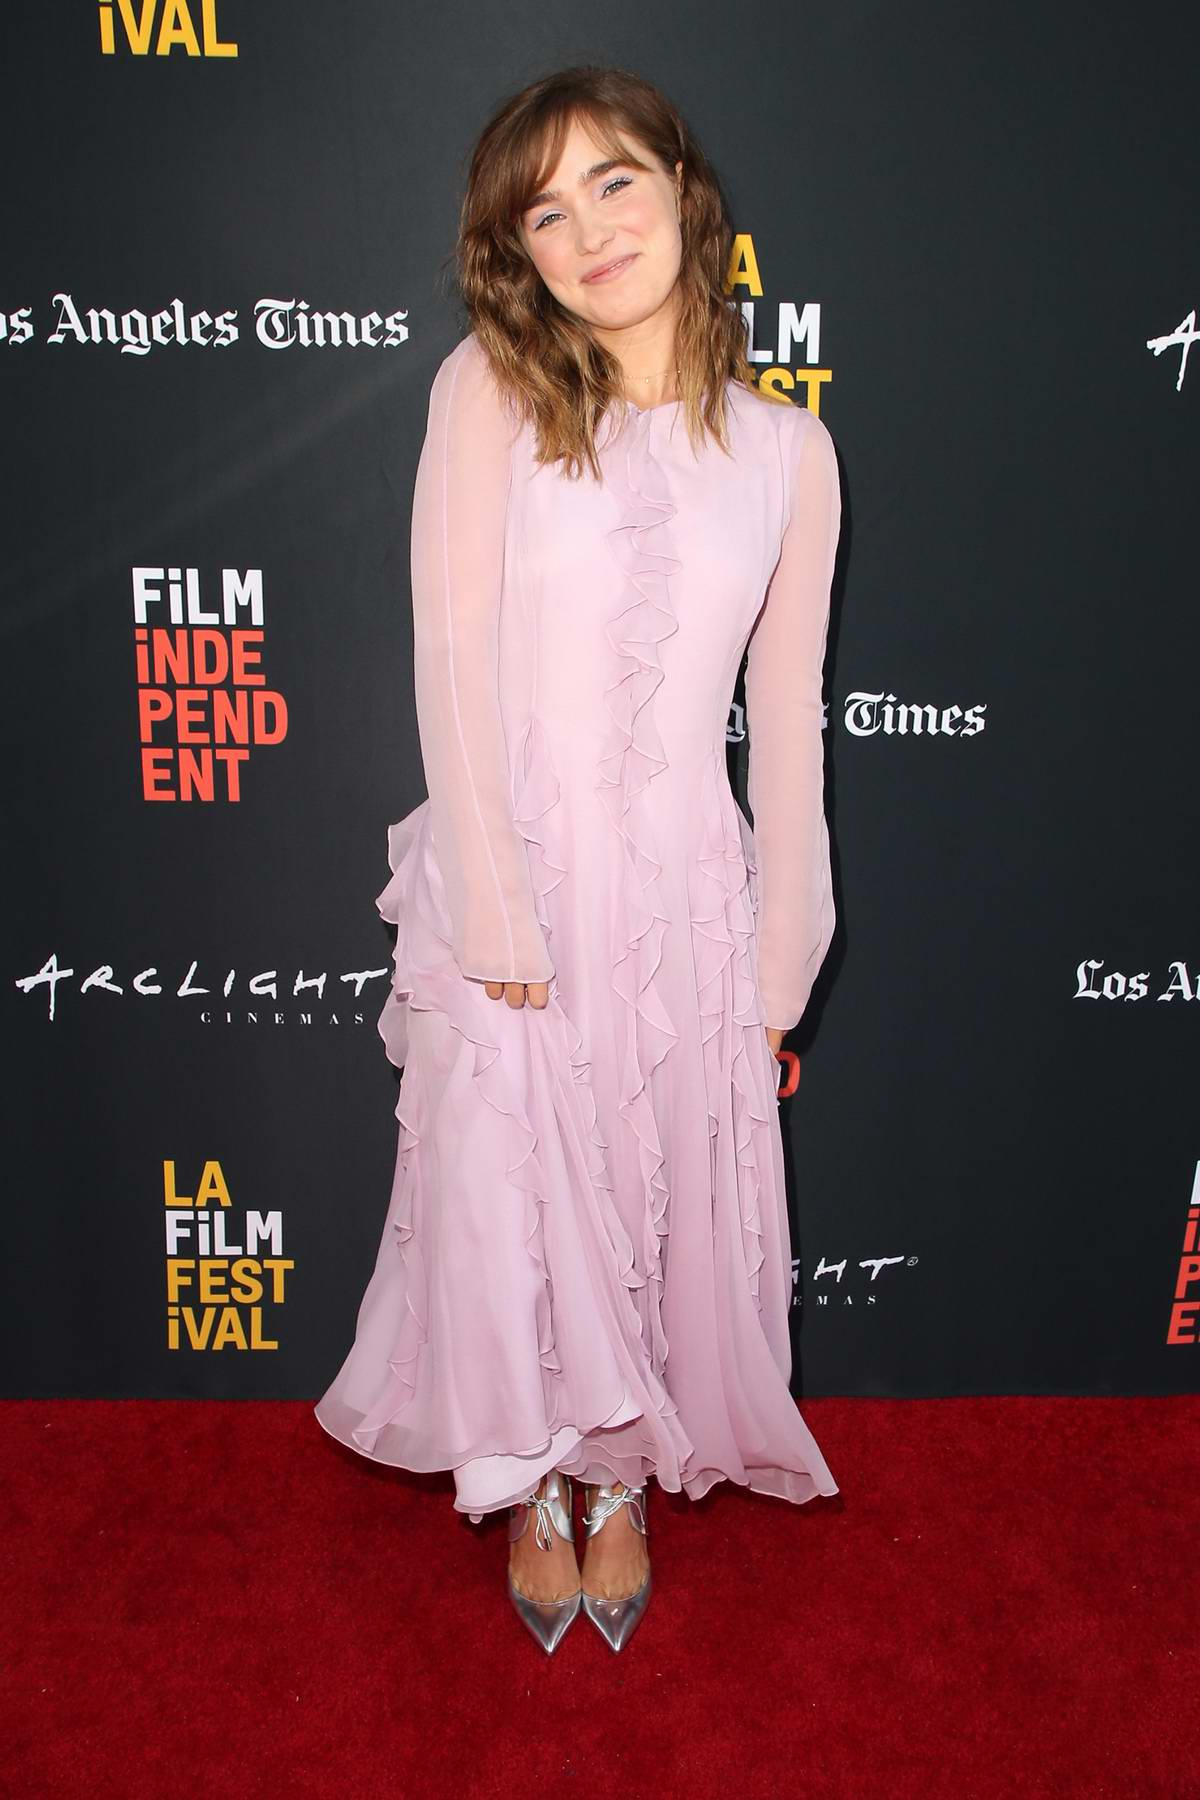 Haley Lu Richardson attends 'The Chaperone' premiere during 2018 LA Film Festival in Culver City, California